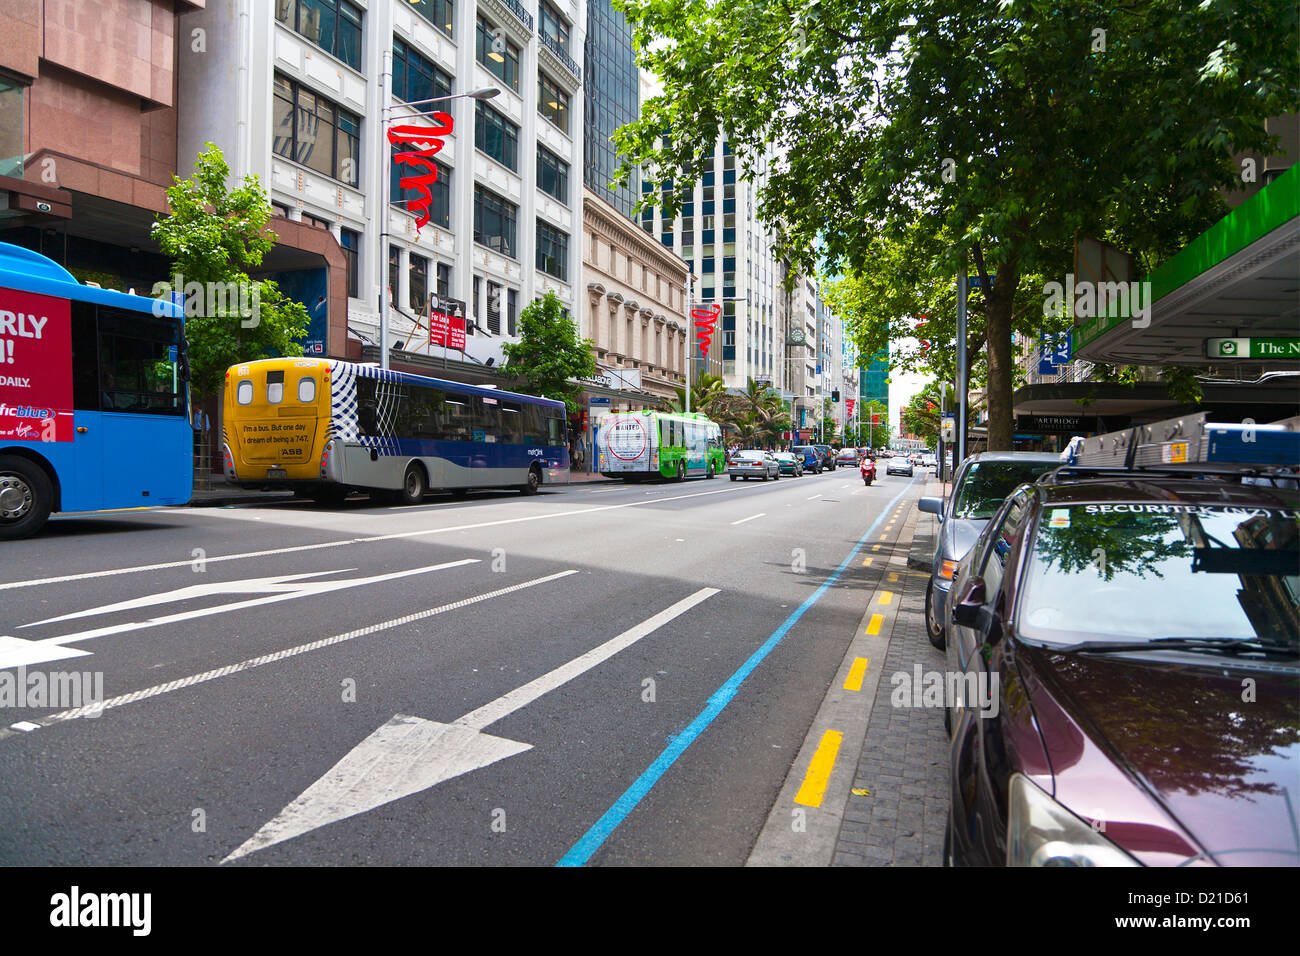 Coaches and cars parked in a street in Auckland City, North Island, New Zealand. - Stock Image